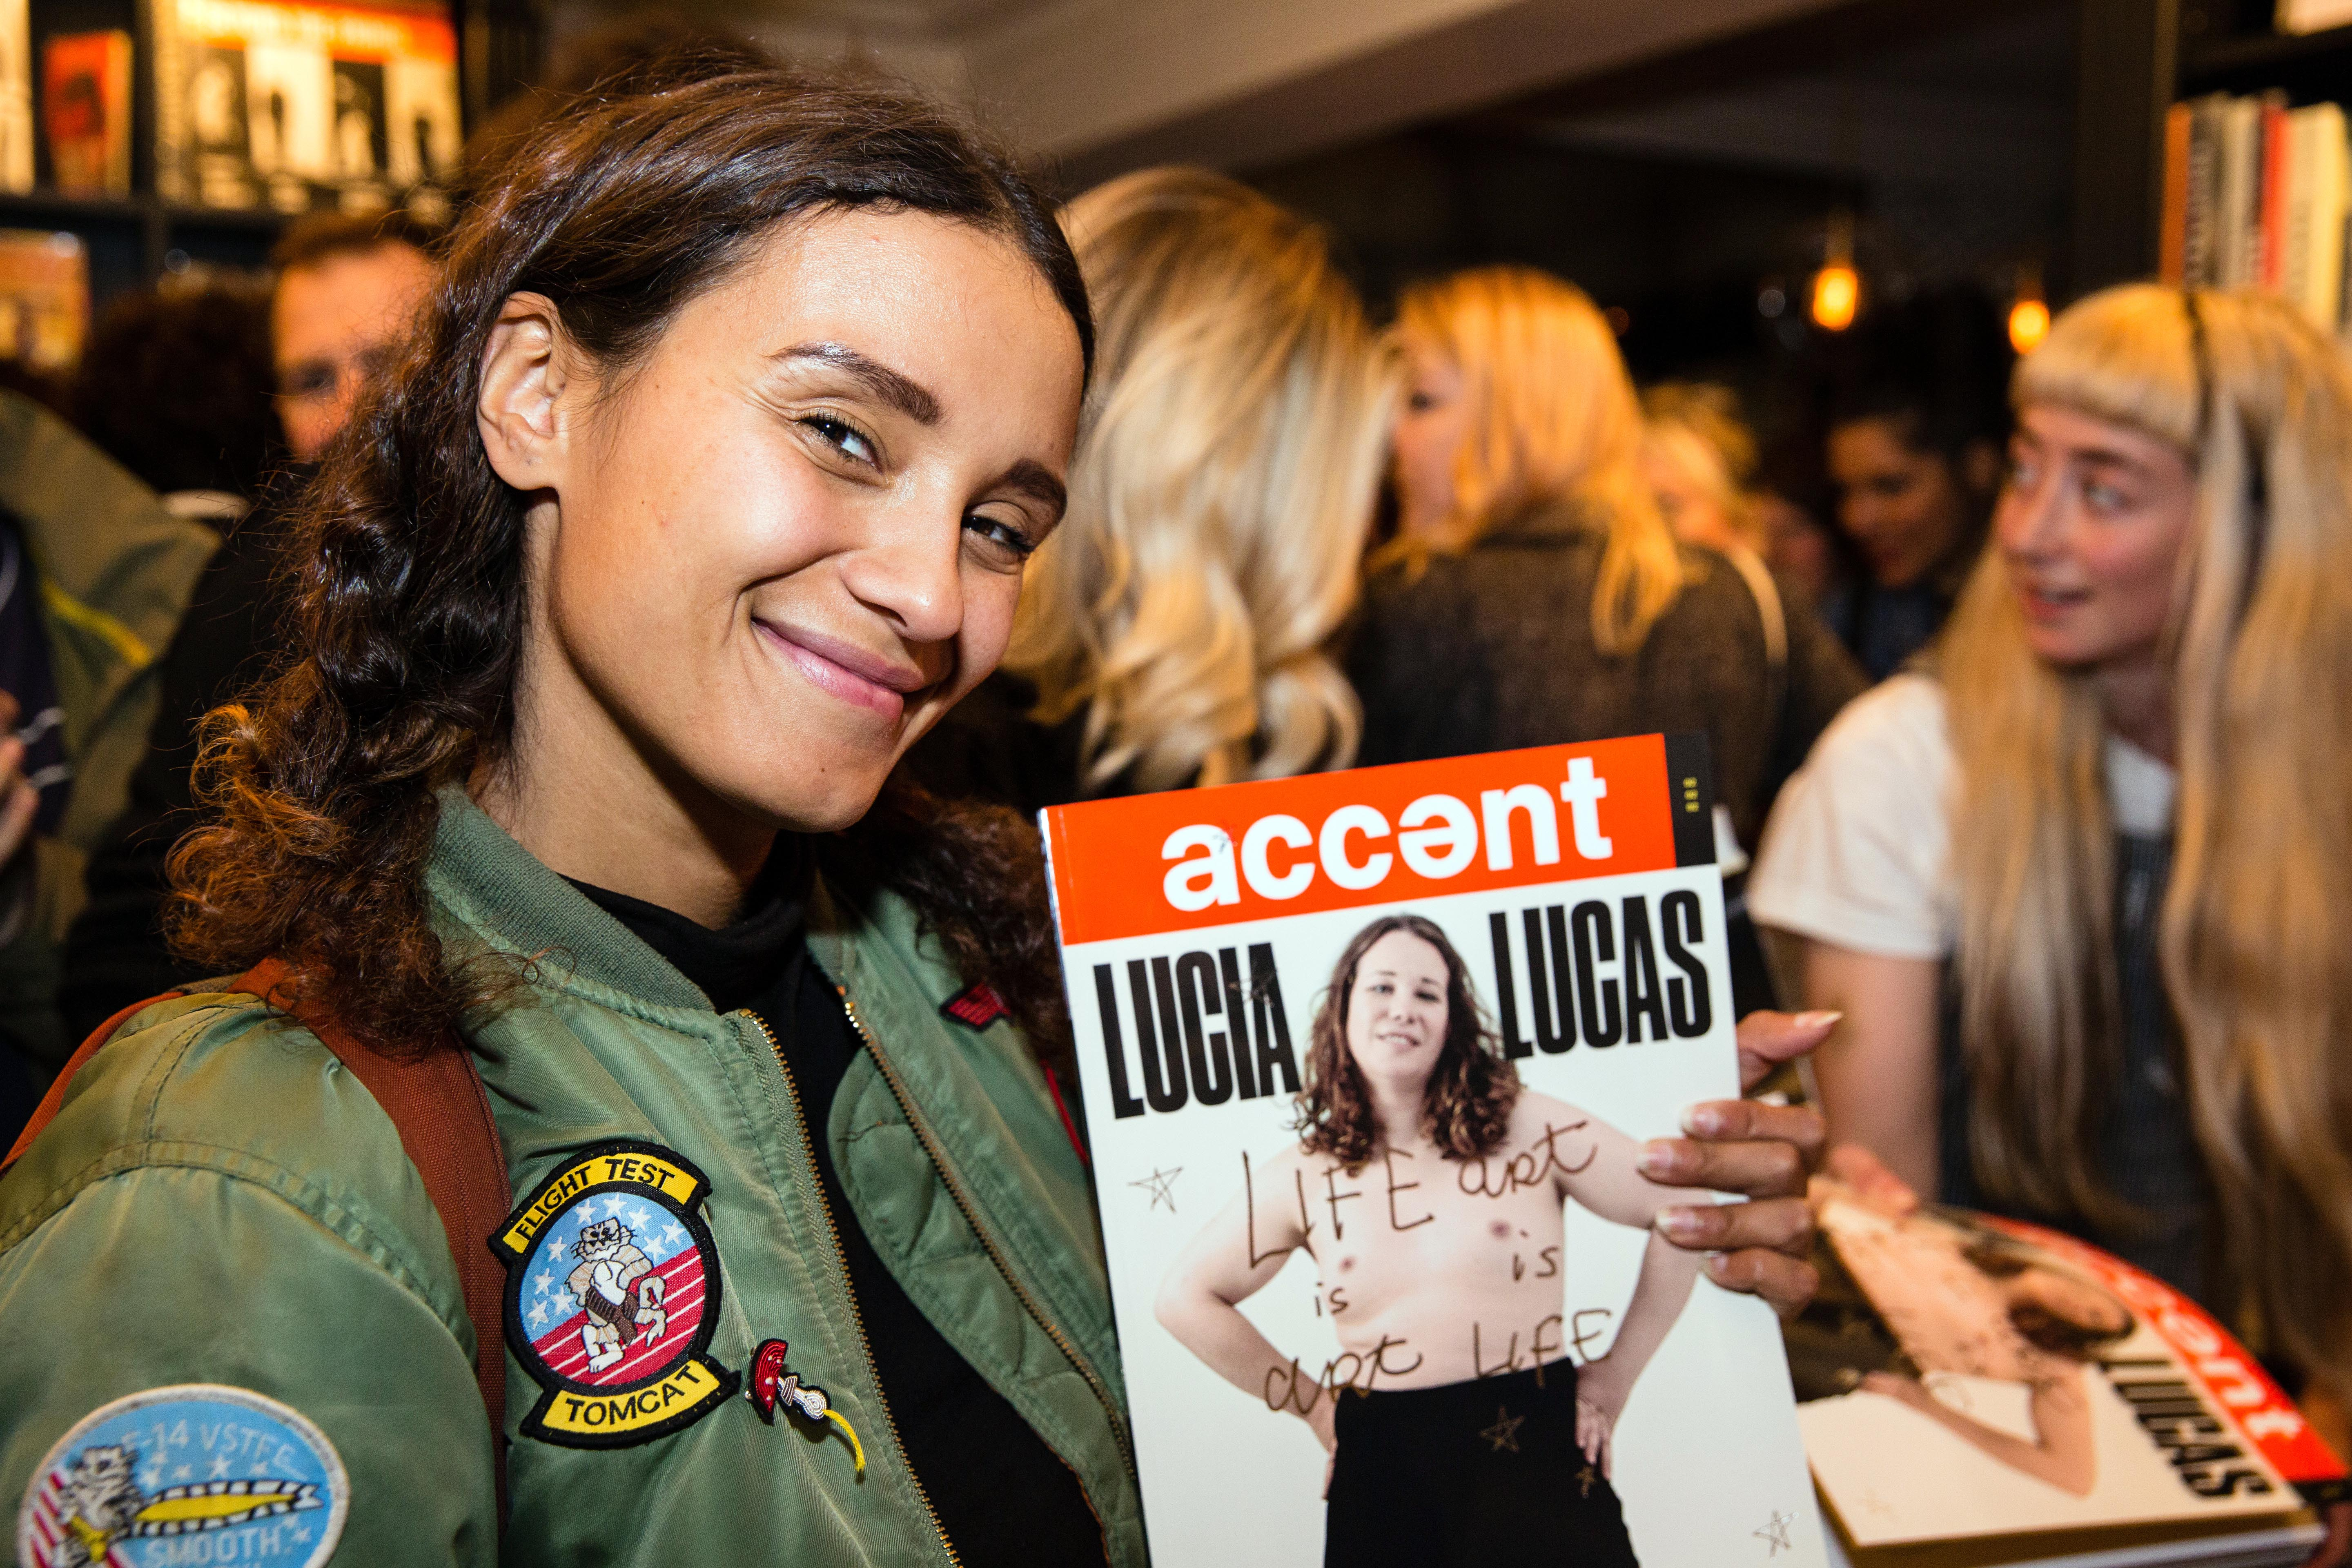 accent29-9-16iw76